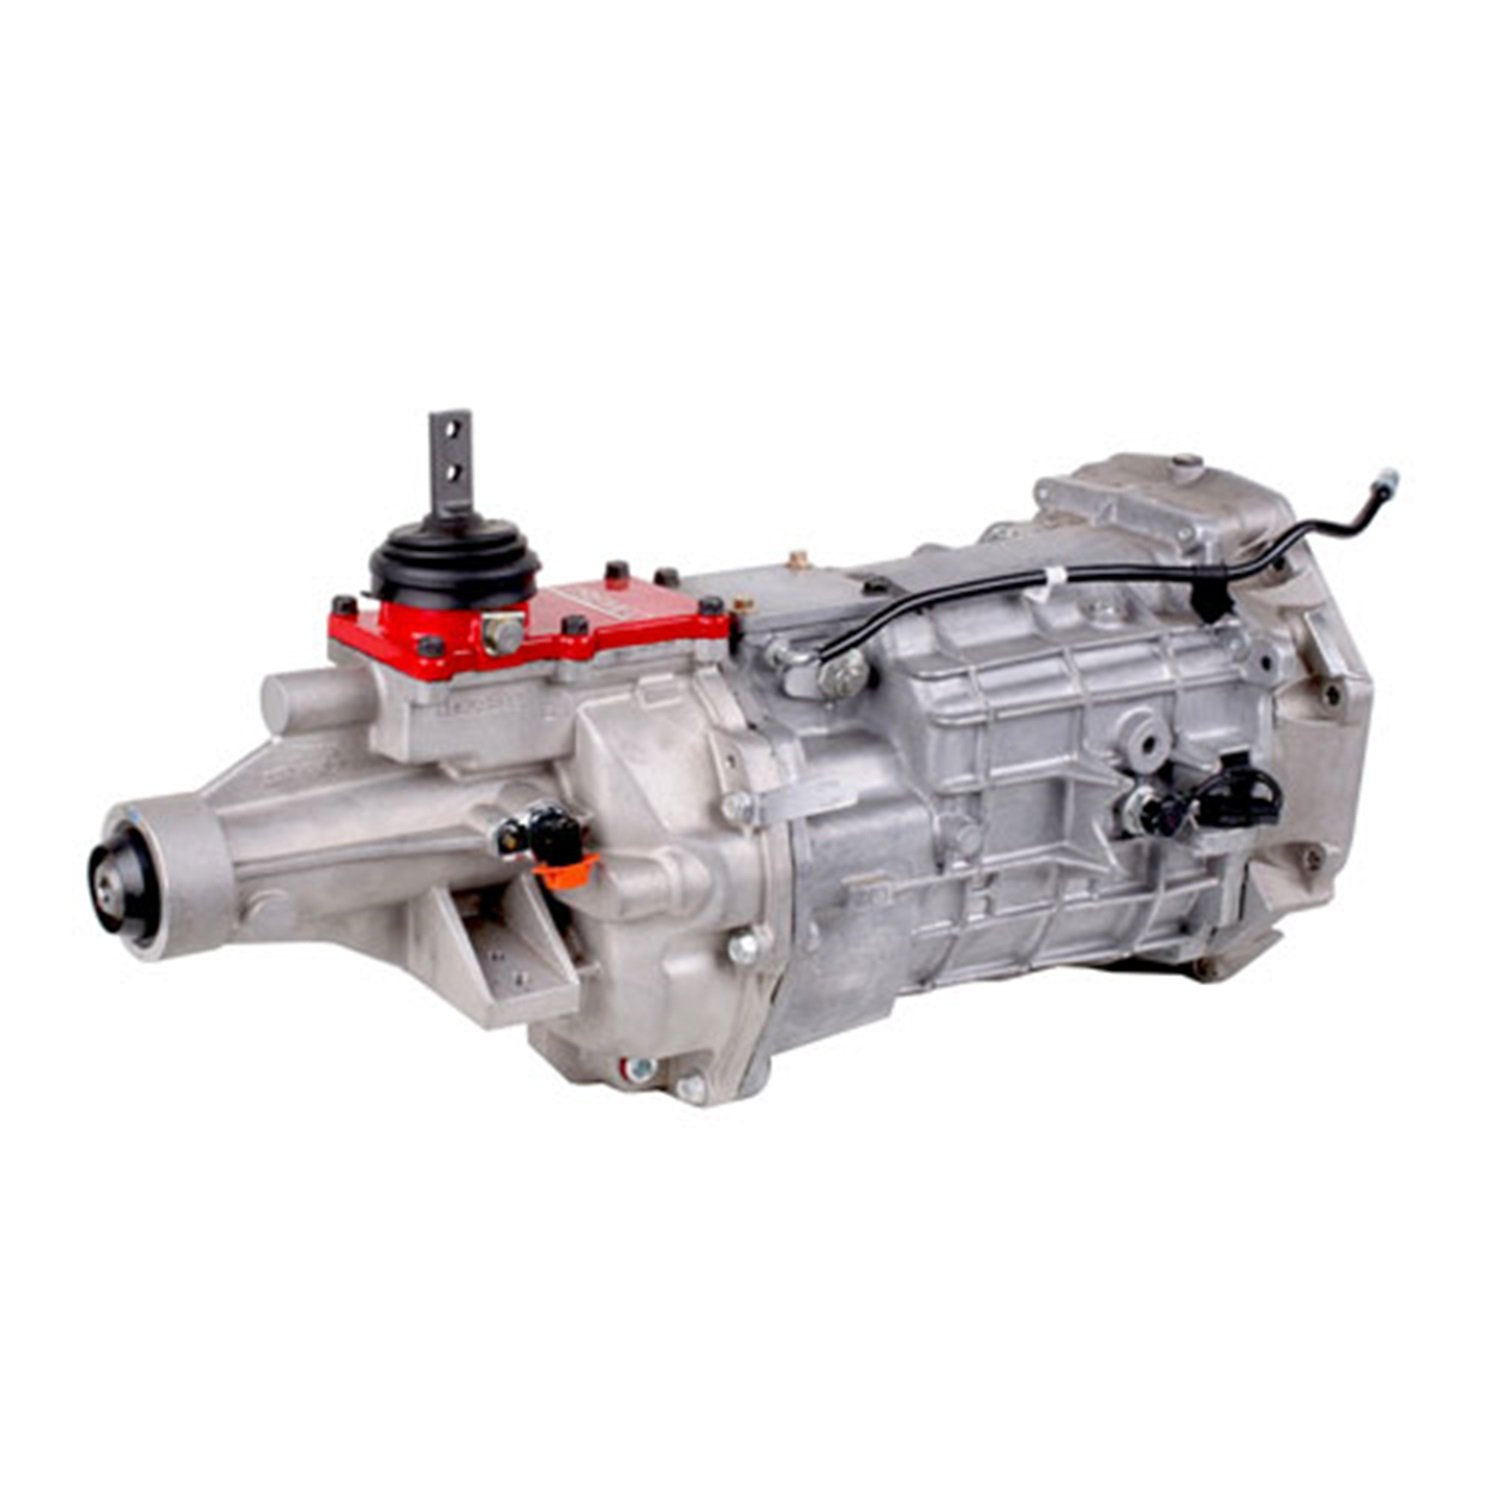 M-7003-M6266 6-Speed Manual Transmission Assembly Ford Racing ...